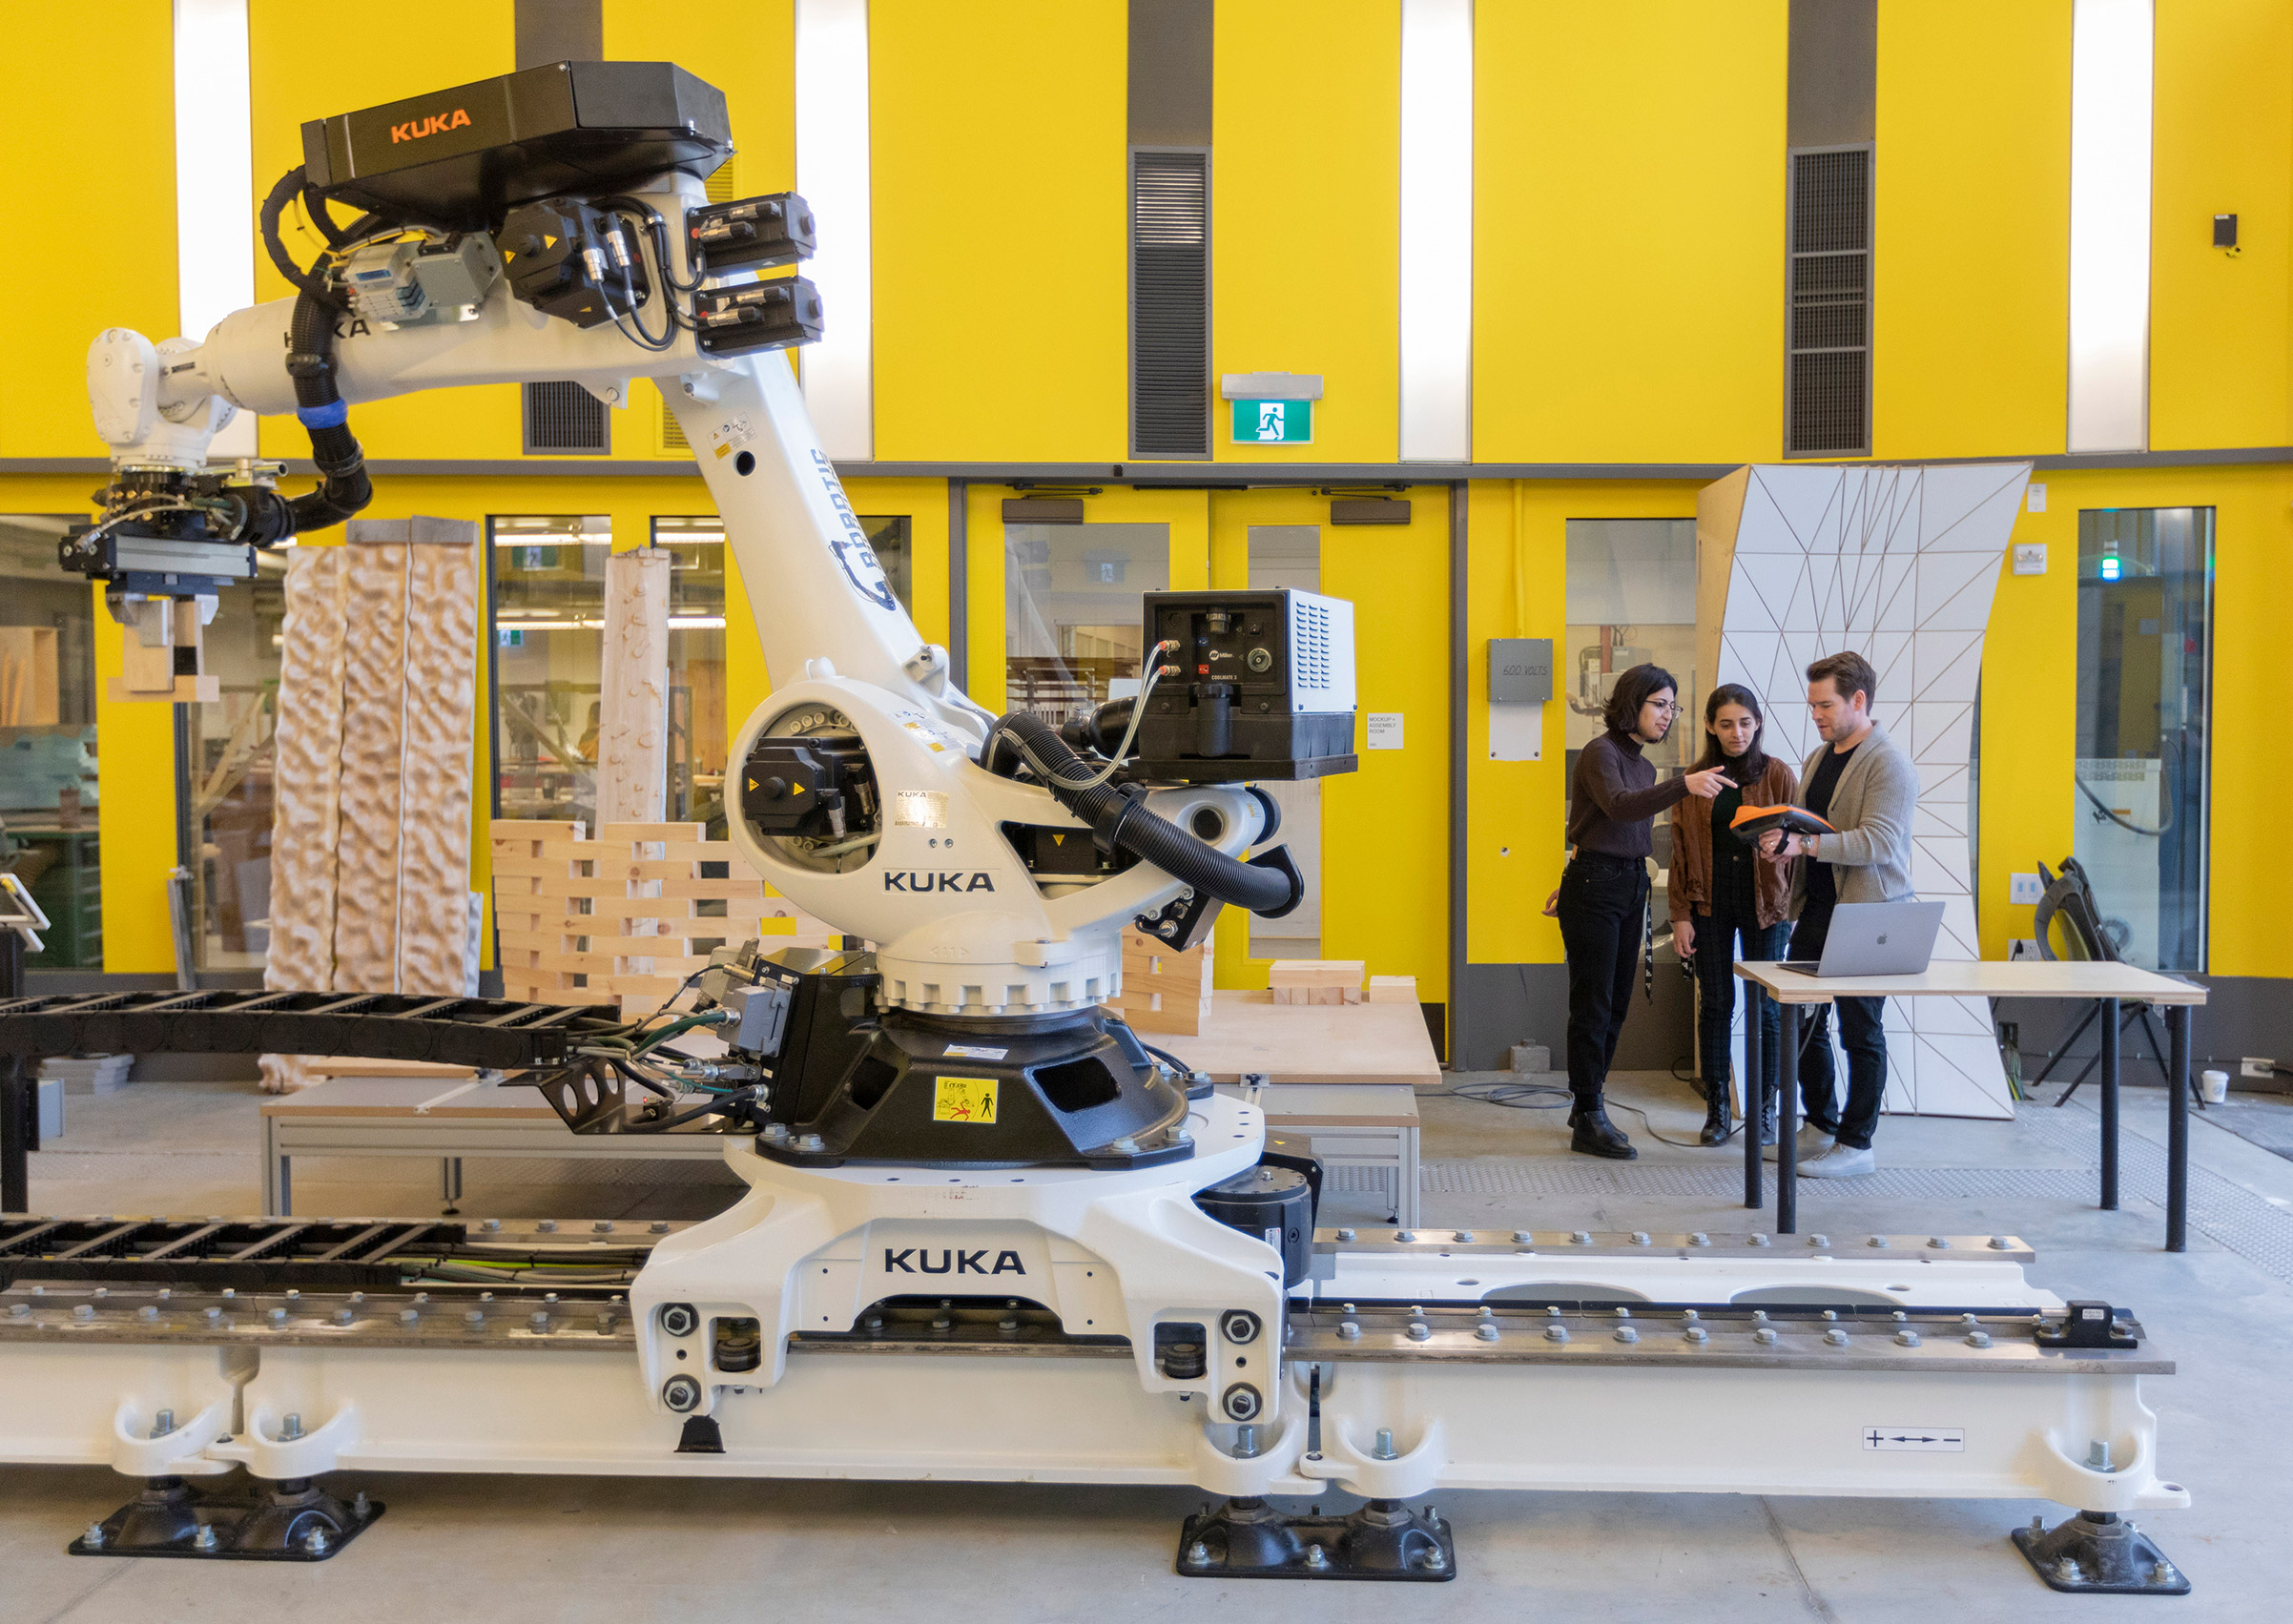 Robotic arm at the digital fabrication laboratory